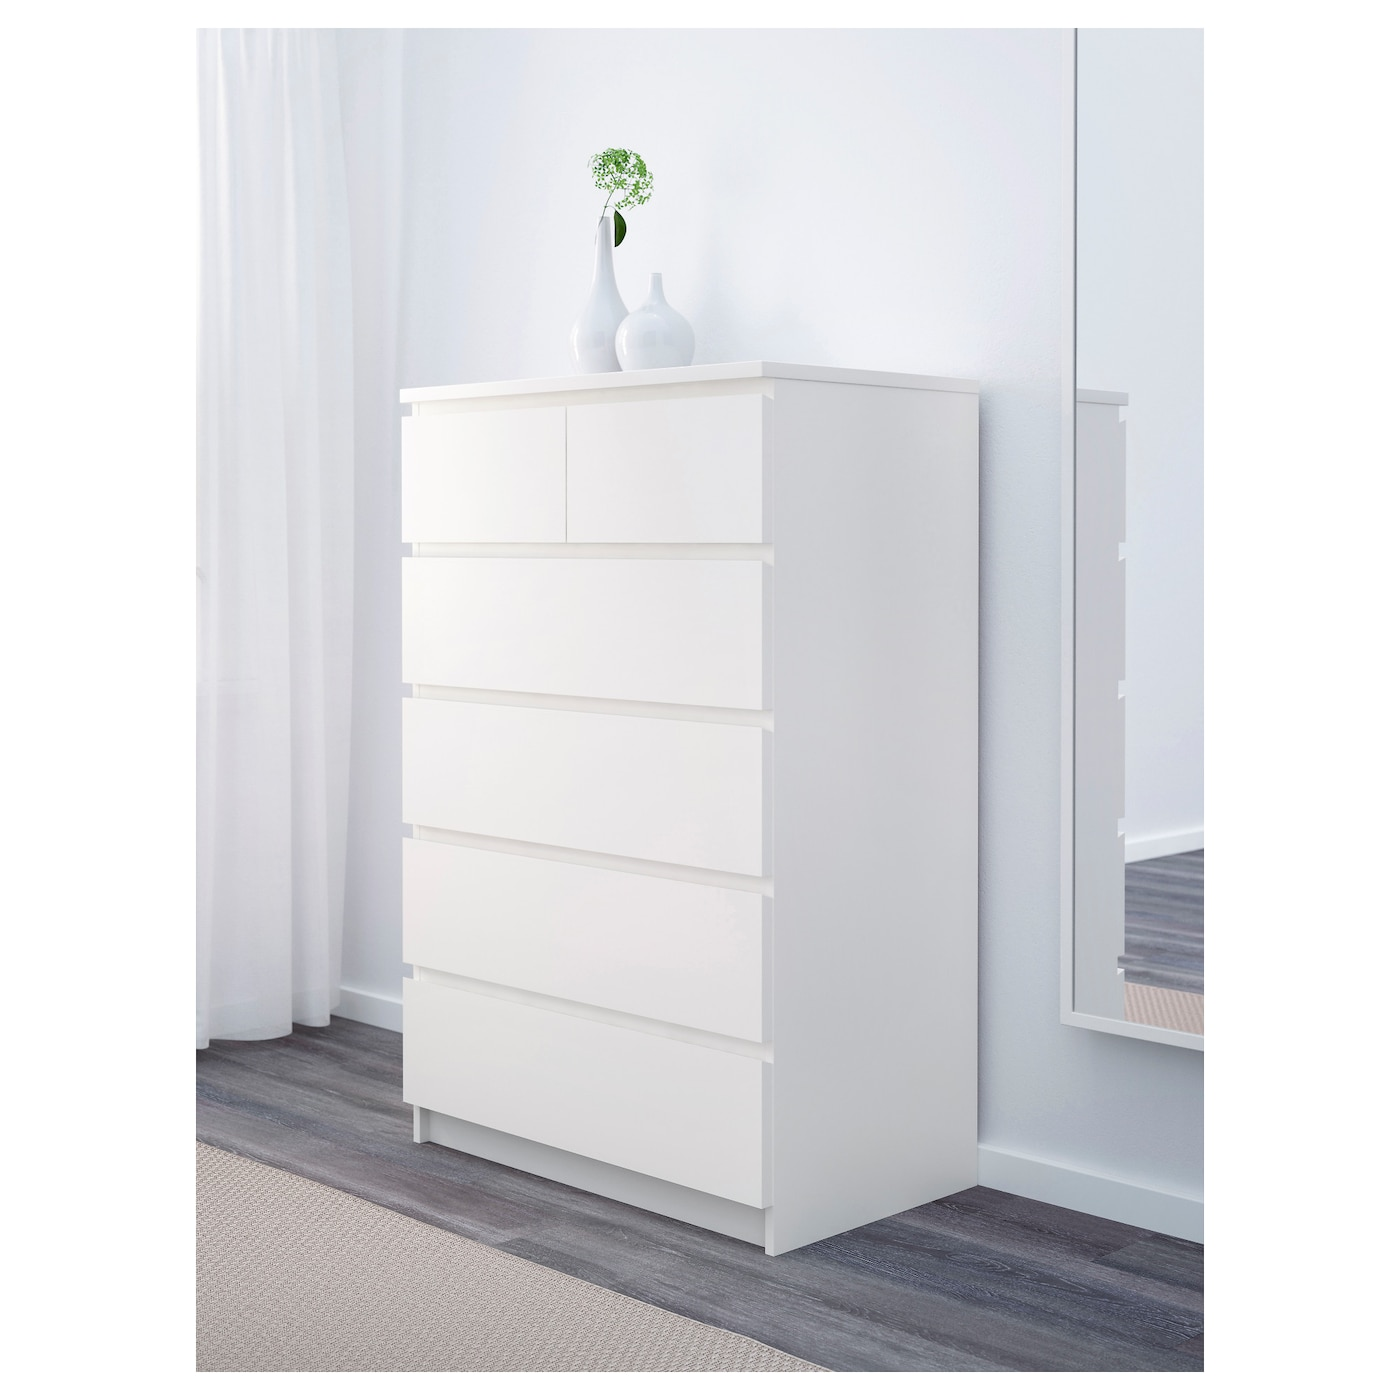 Malm chest of 6 drawers white 80x123 cm ikea for Settimino ikea